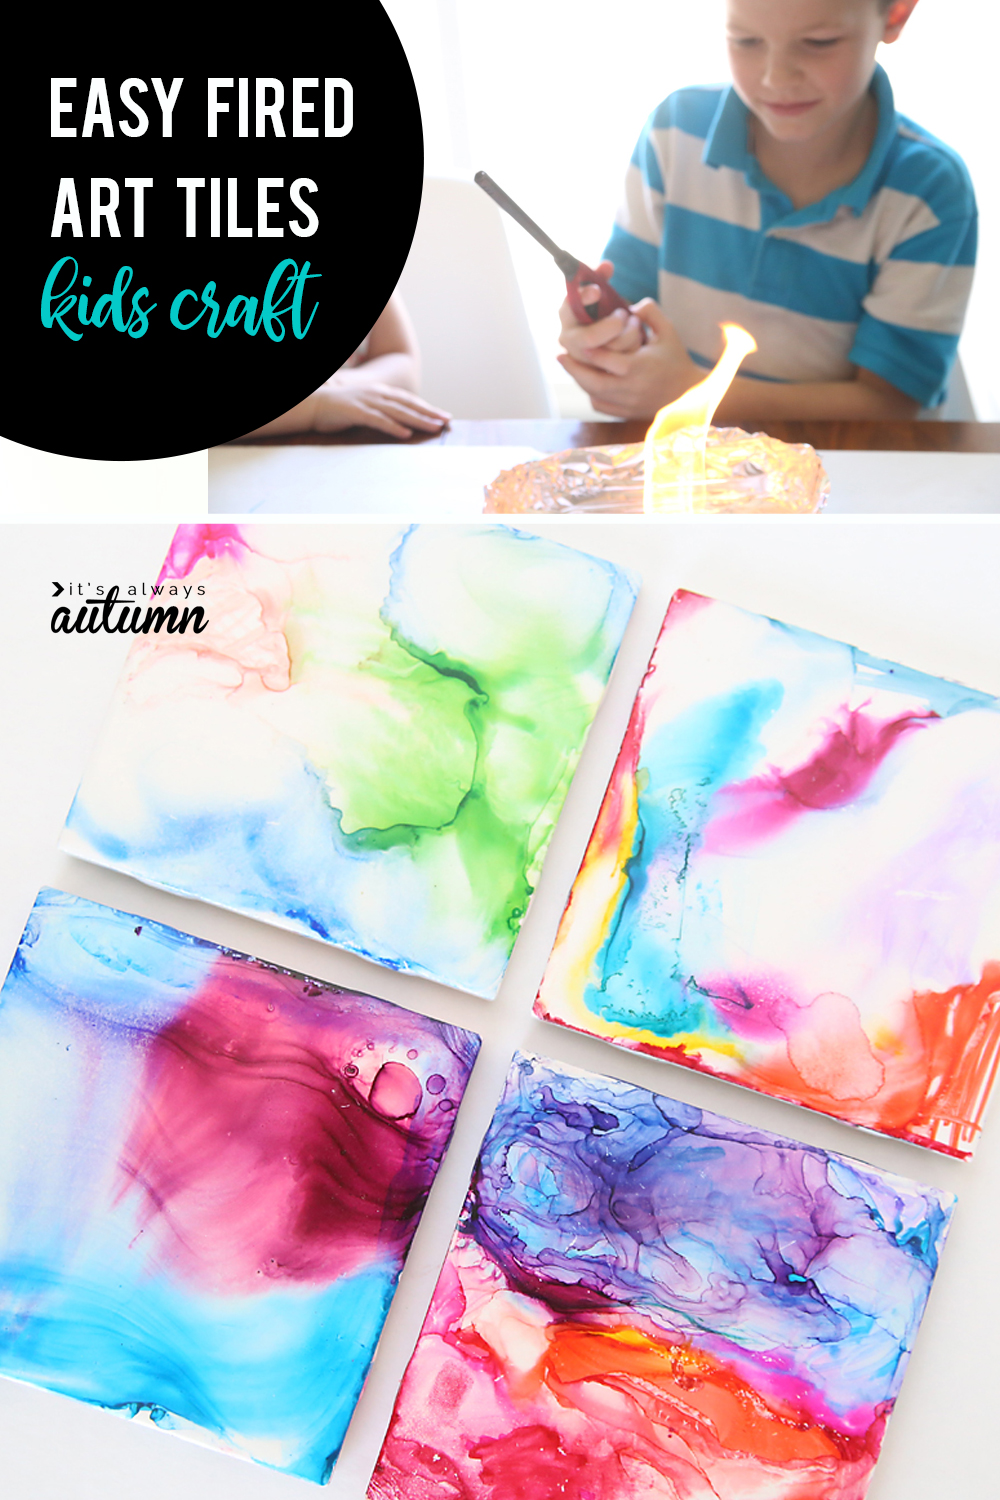 Kids can make these fired art tiles with just pens and alcohol! Such a fun and easy kid craft.